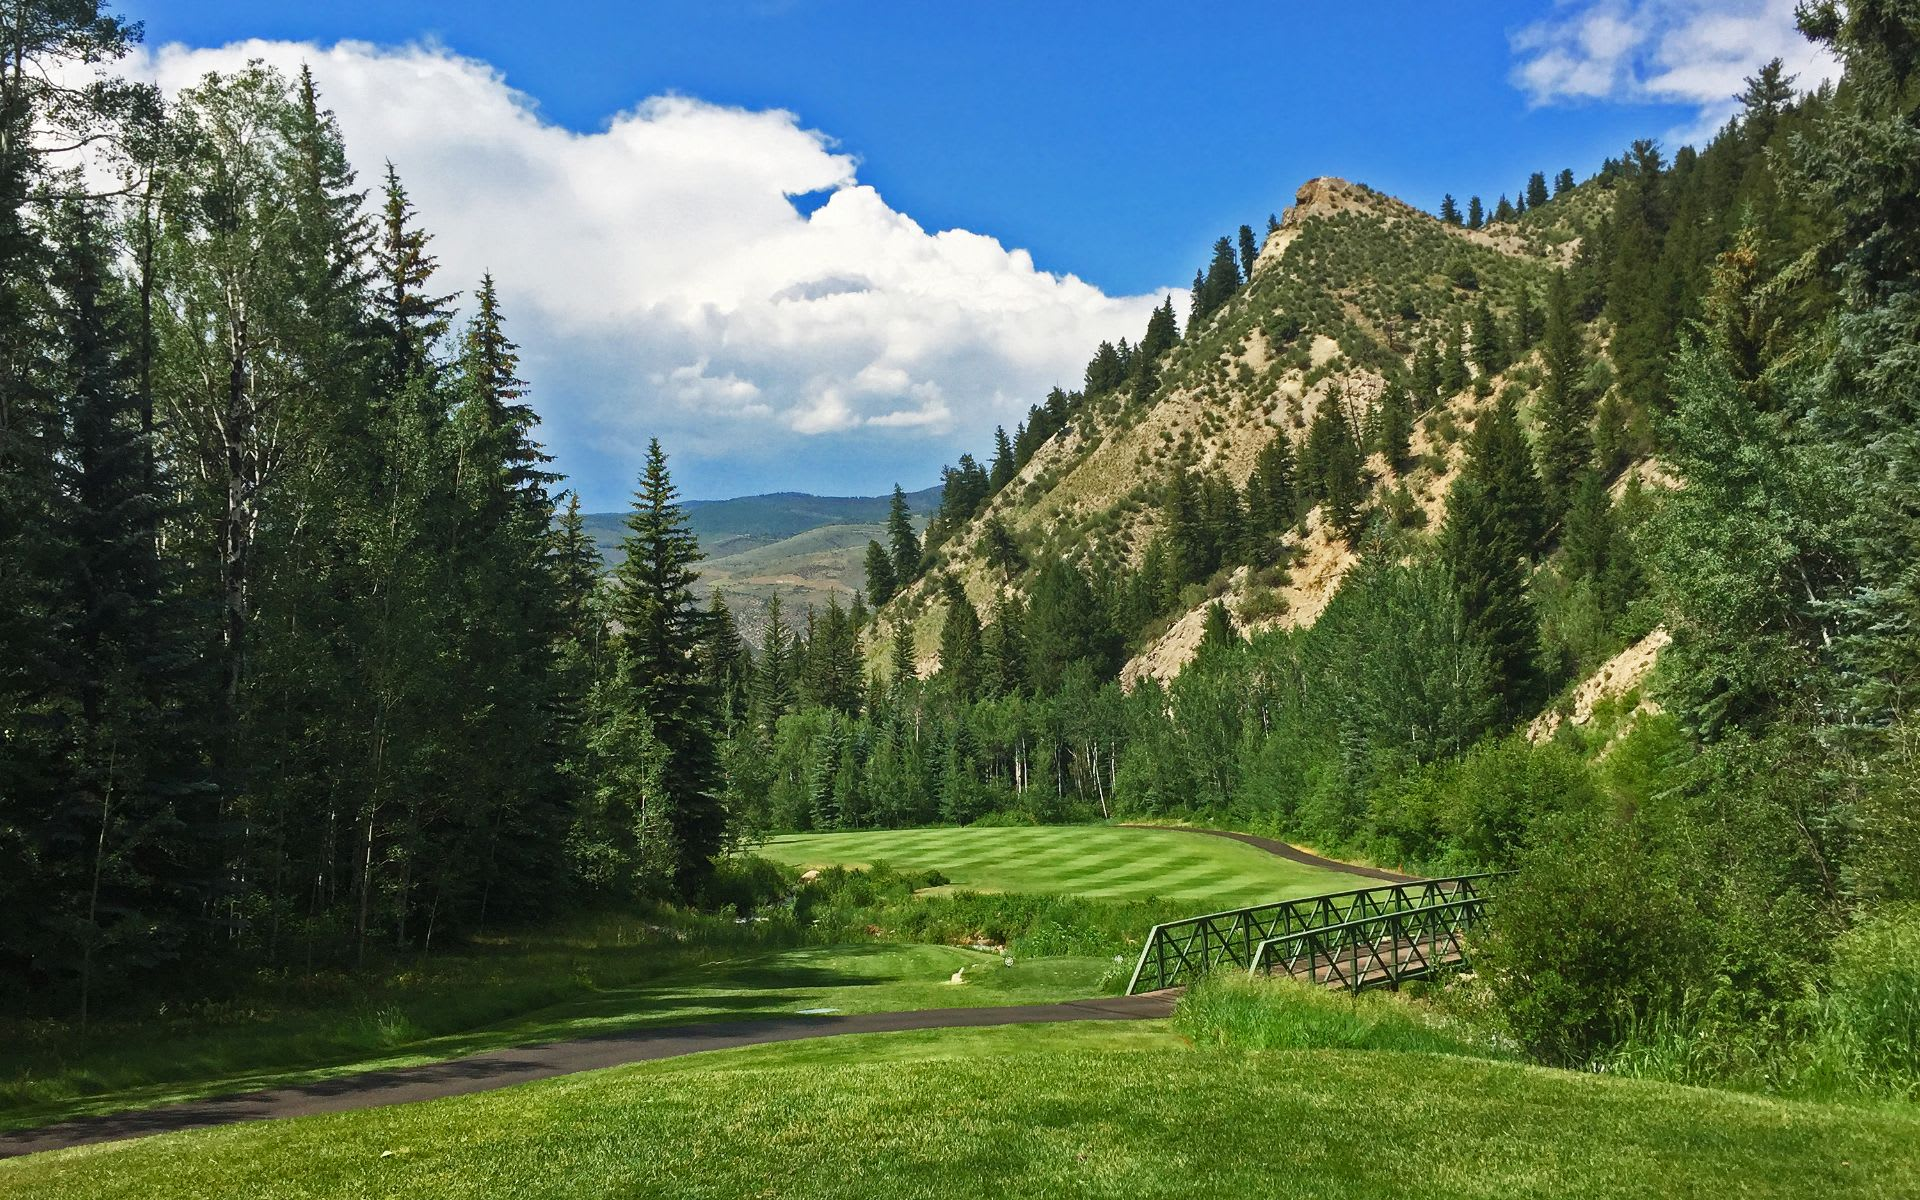 Vail Golf Course image